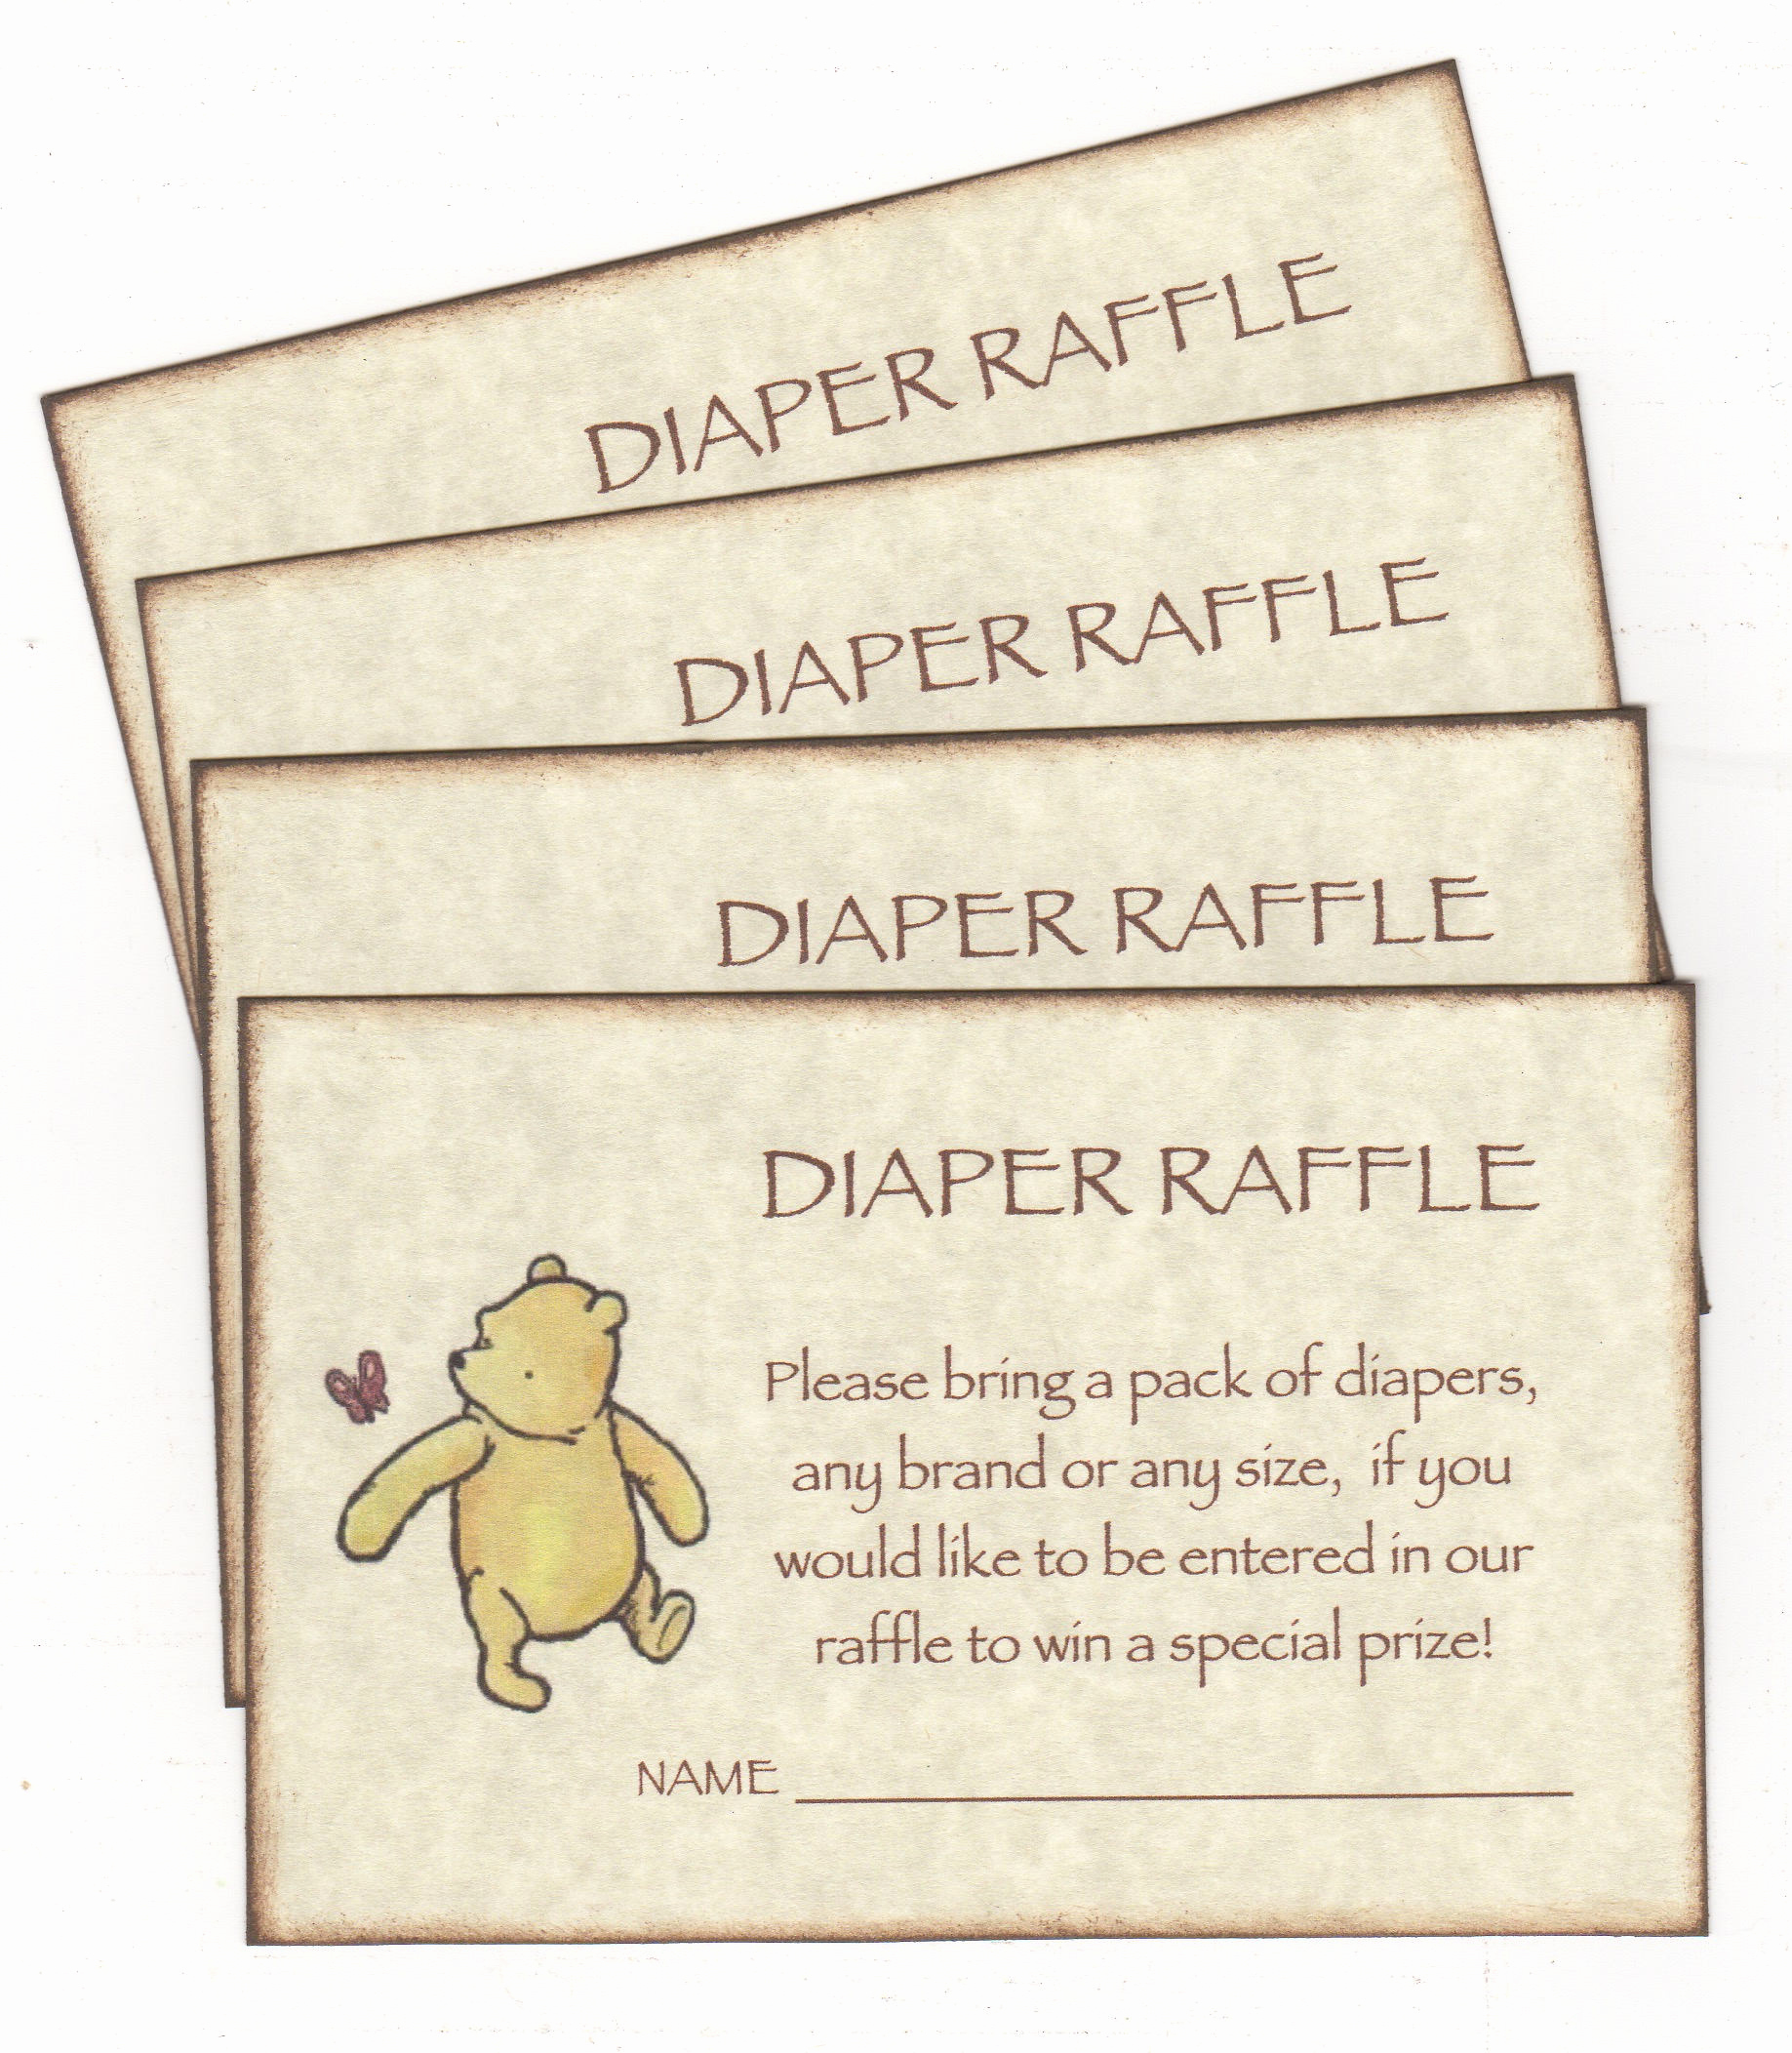 Diaper Raffle Wording On Invitation Luxury Winnie the Pooh Diaper Raffle Invitation Add for Baby